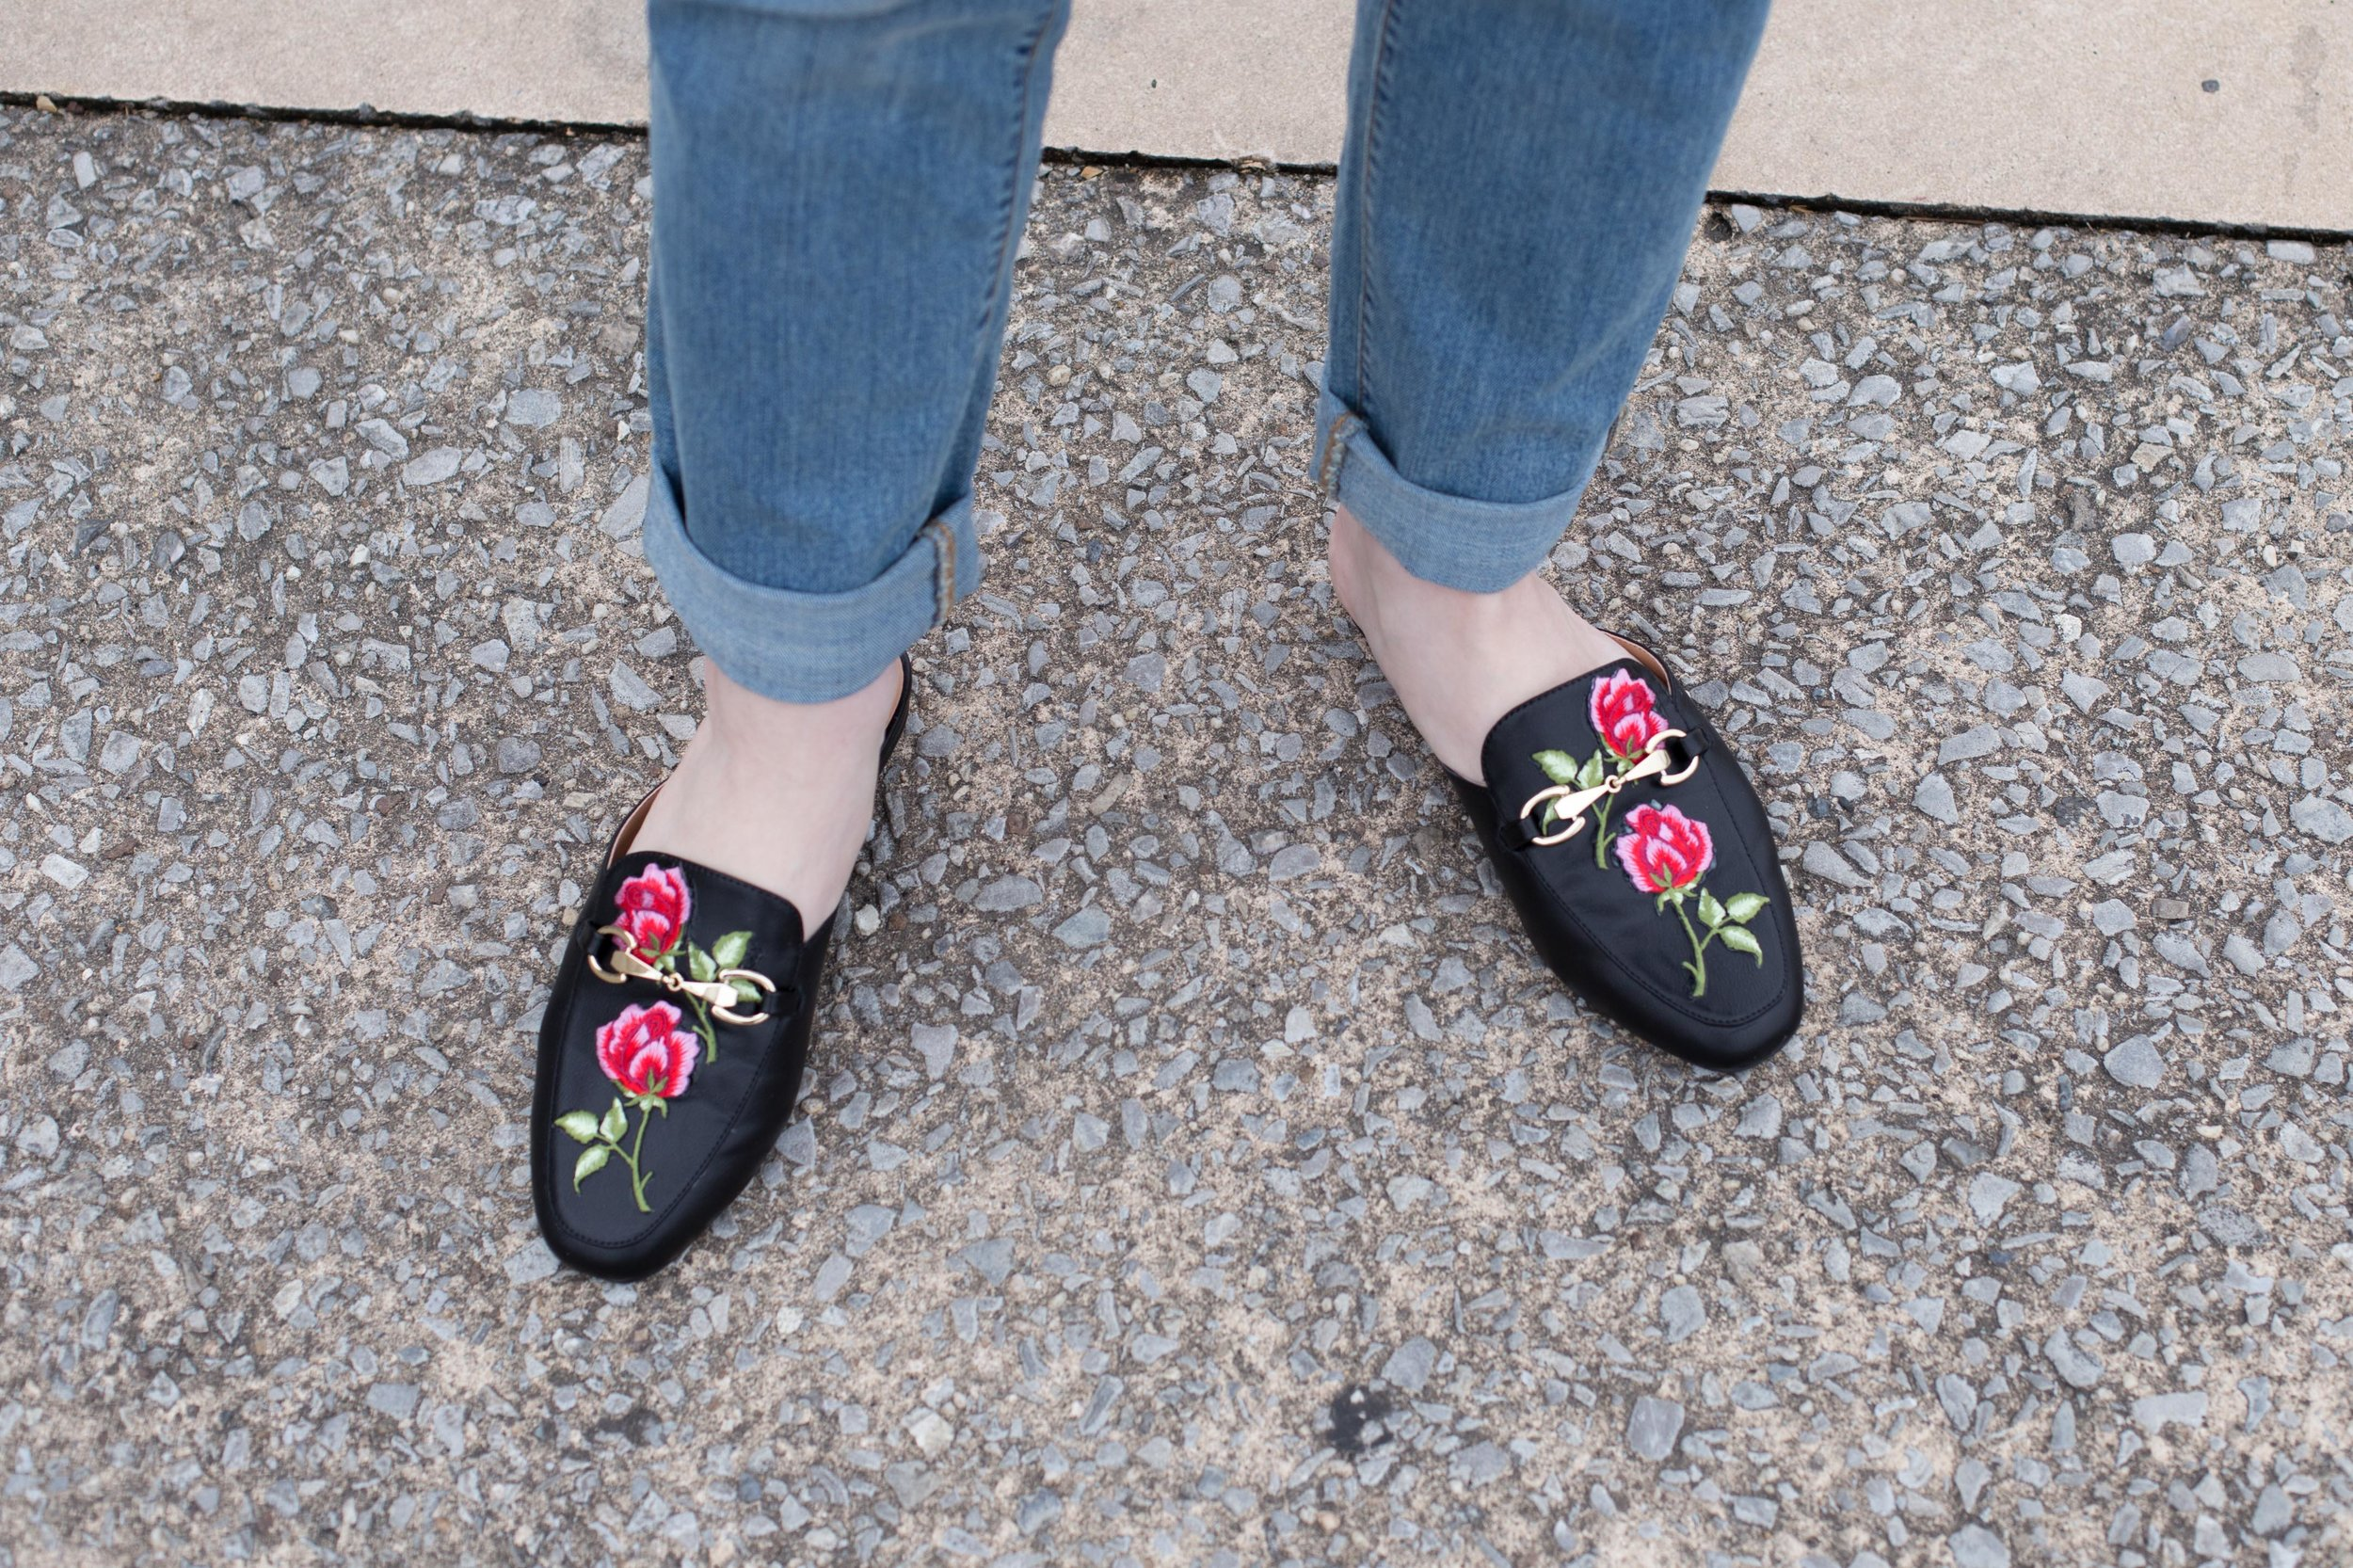 Taking a stab at the embroidered slip-on loafer trend in these Gucci dupes. They go perfectly with a boyfriend jean and a simple blouse!